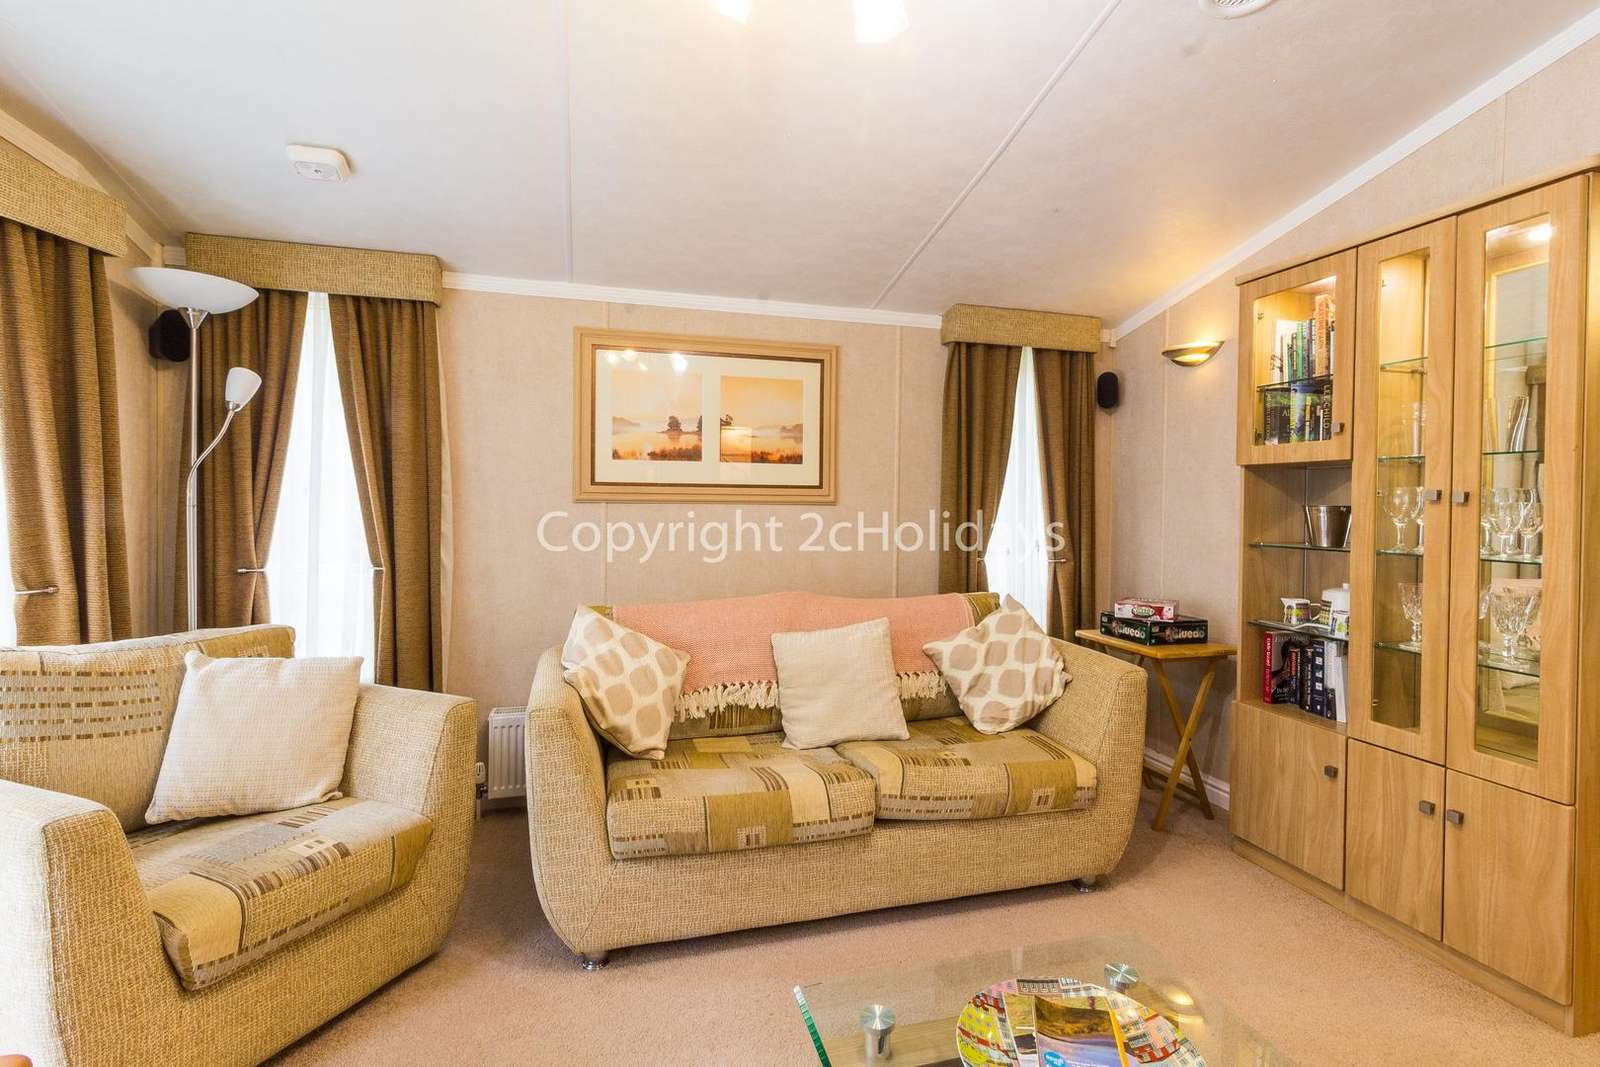 You can relax in this lovely lounge which comes with an electric fire and books to enjoy